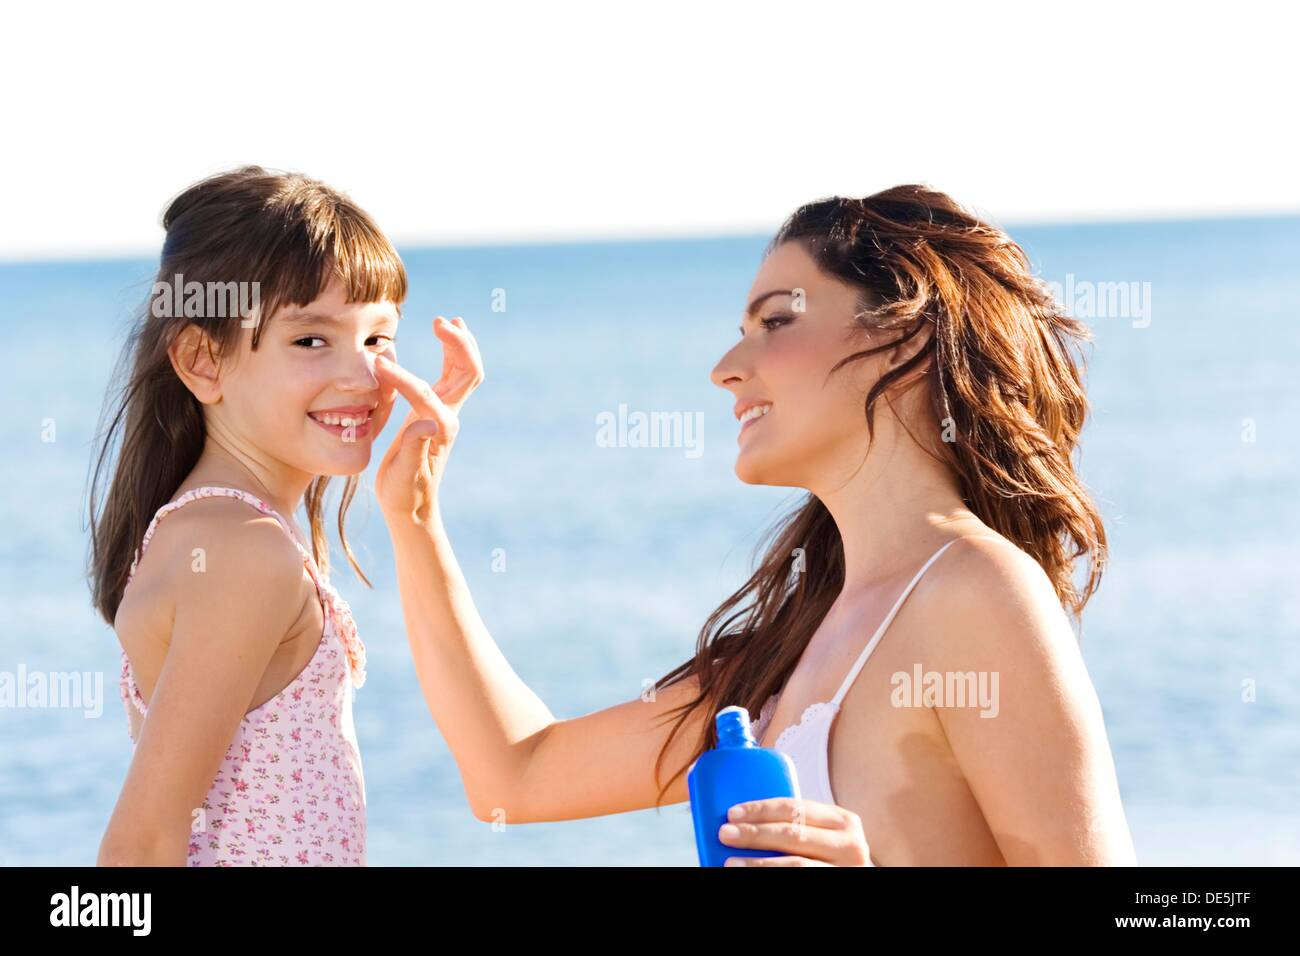 Mother applying sun protection cream to her daughter - Stock Image